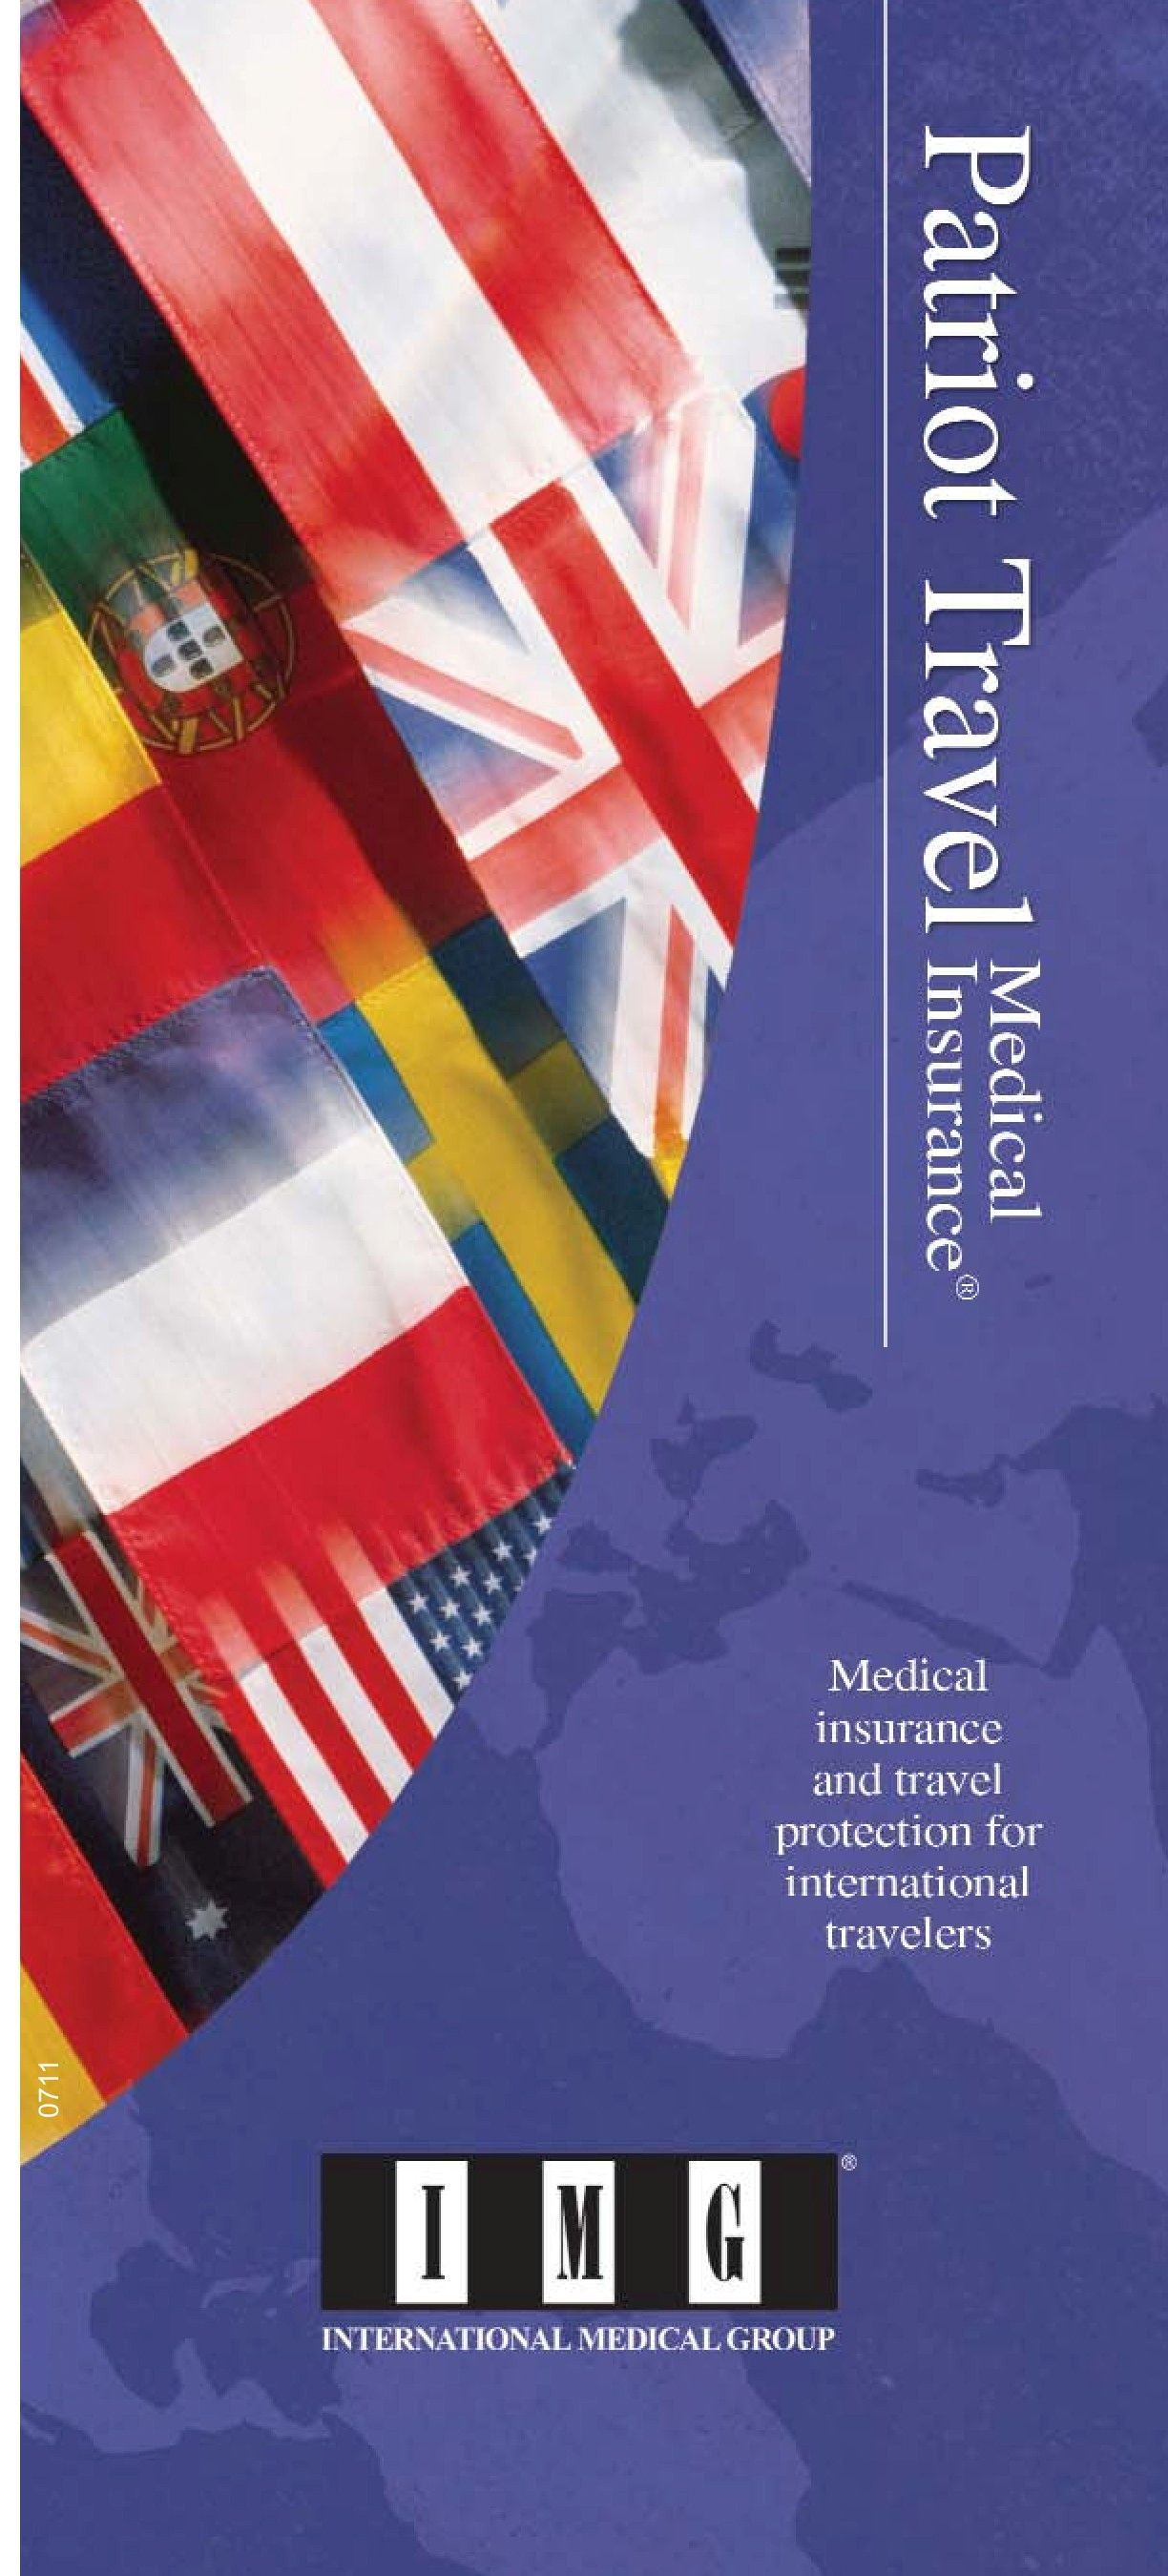 Patriot America insurance is a comprehensive travel